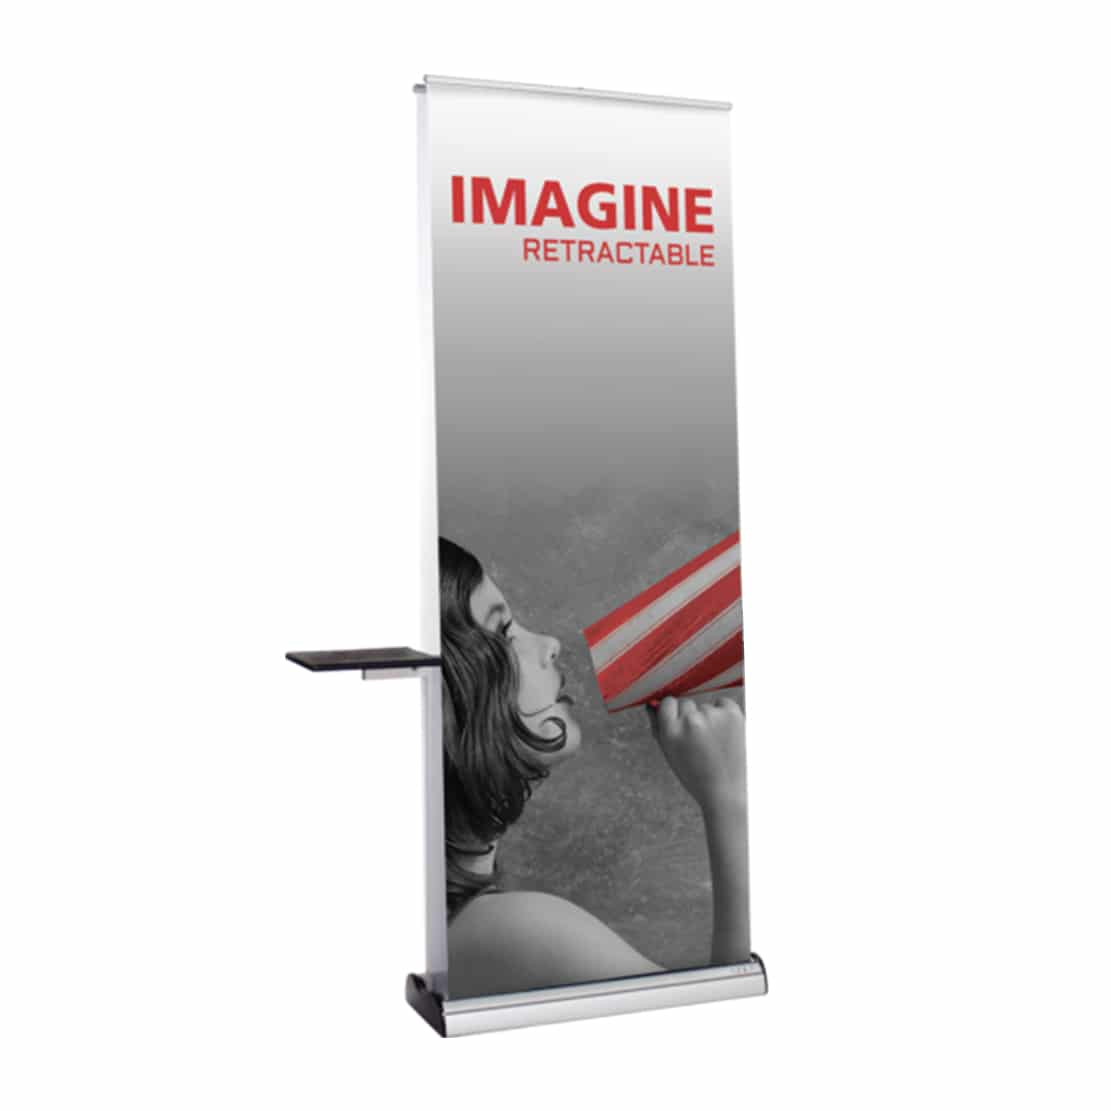 banner stand accessory kit shelf attached to imagine banner stand display